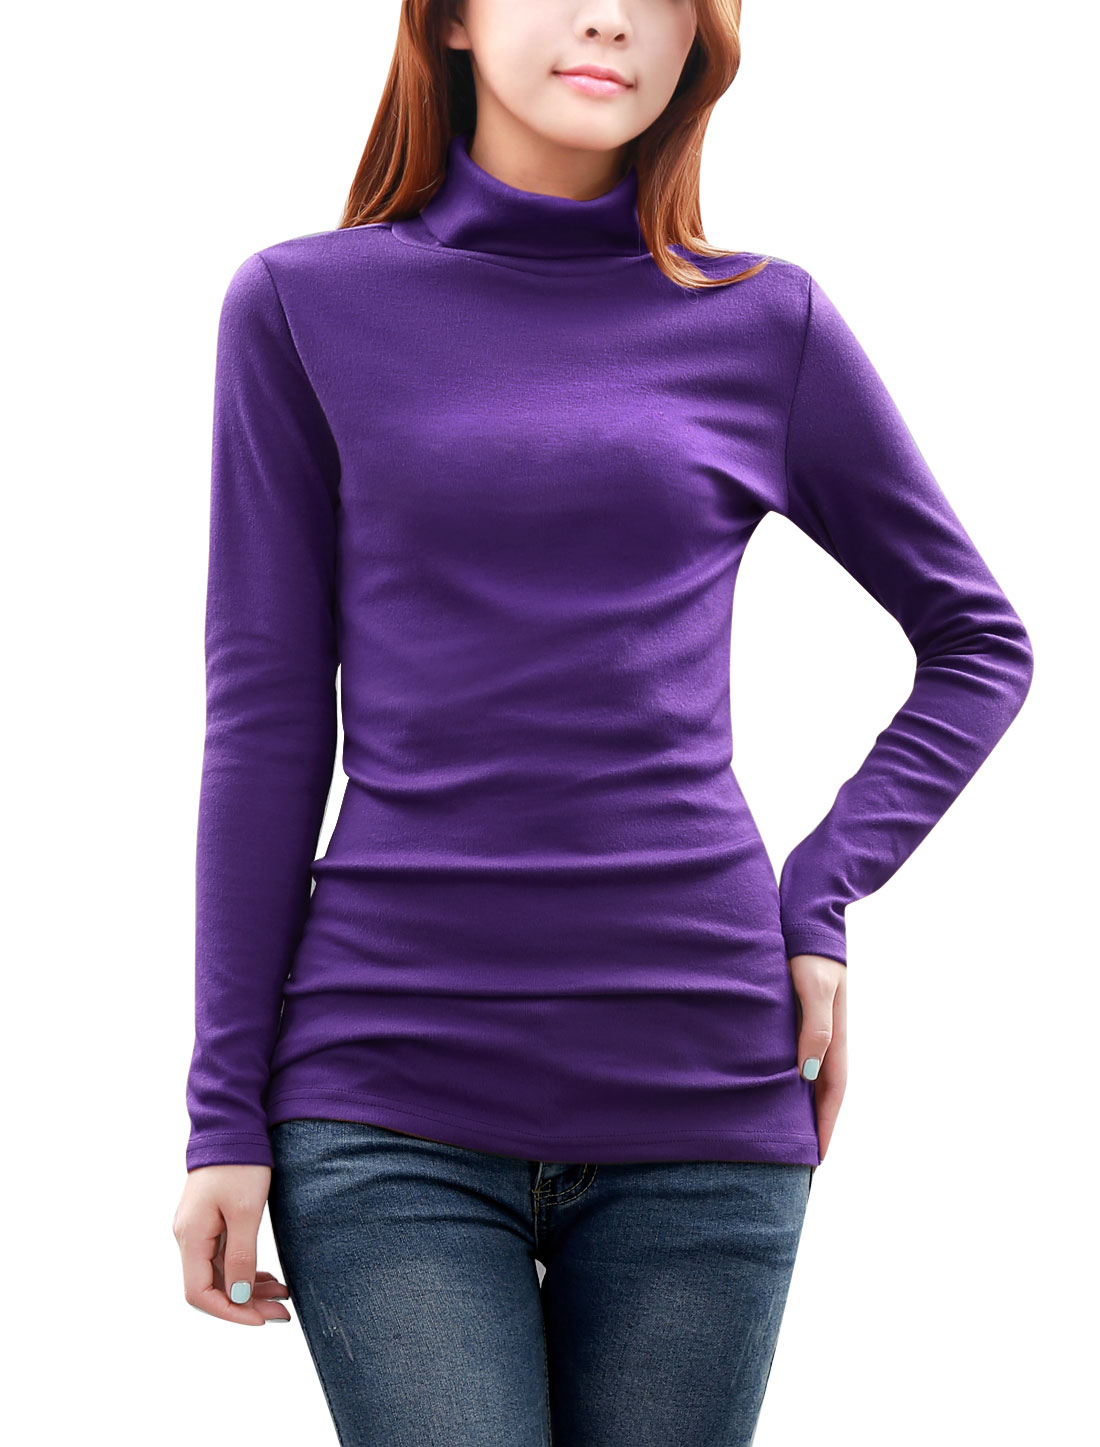 Allegra K Lady Long Sleeve Turtle Neck Stretch Cable Autumn Blouse Purple XS